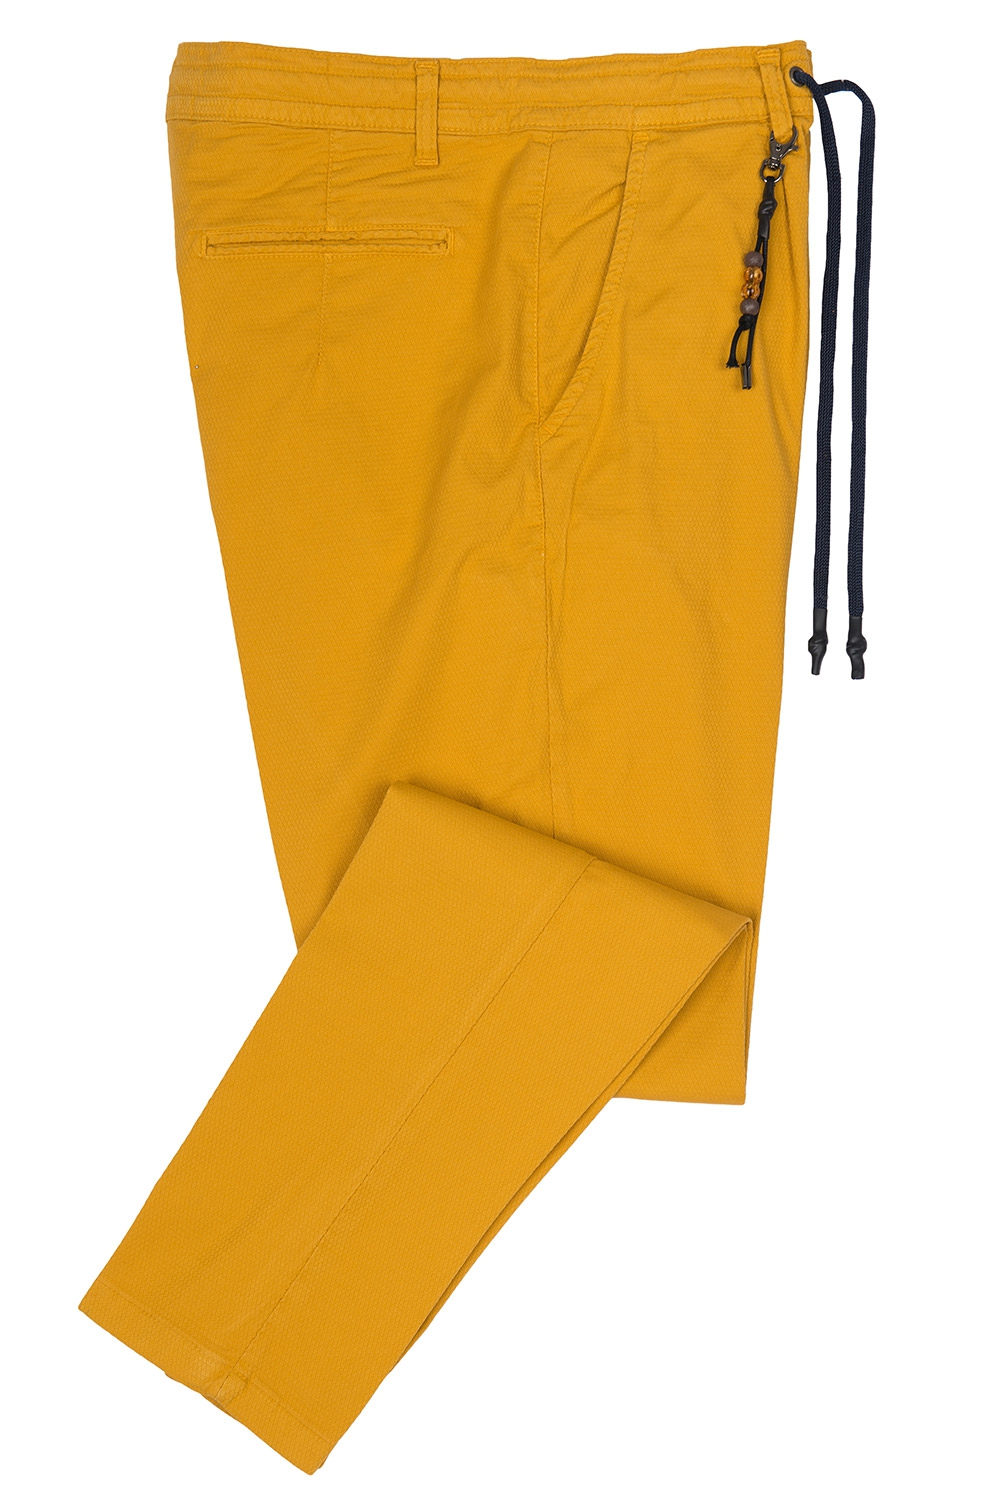 Confort(baggy) Yellow Plain Trouser 0